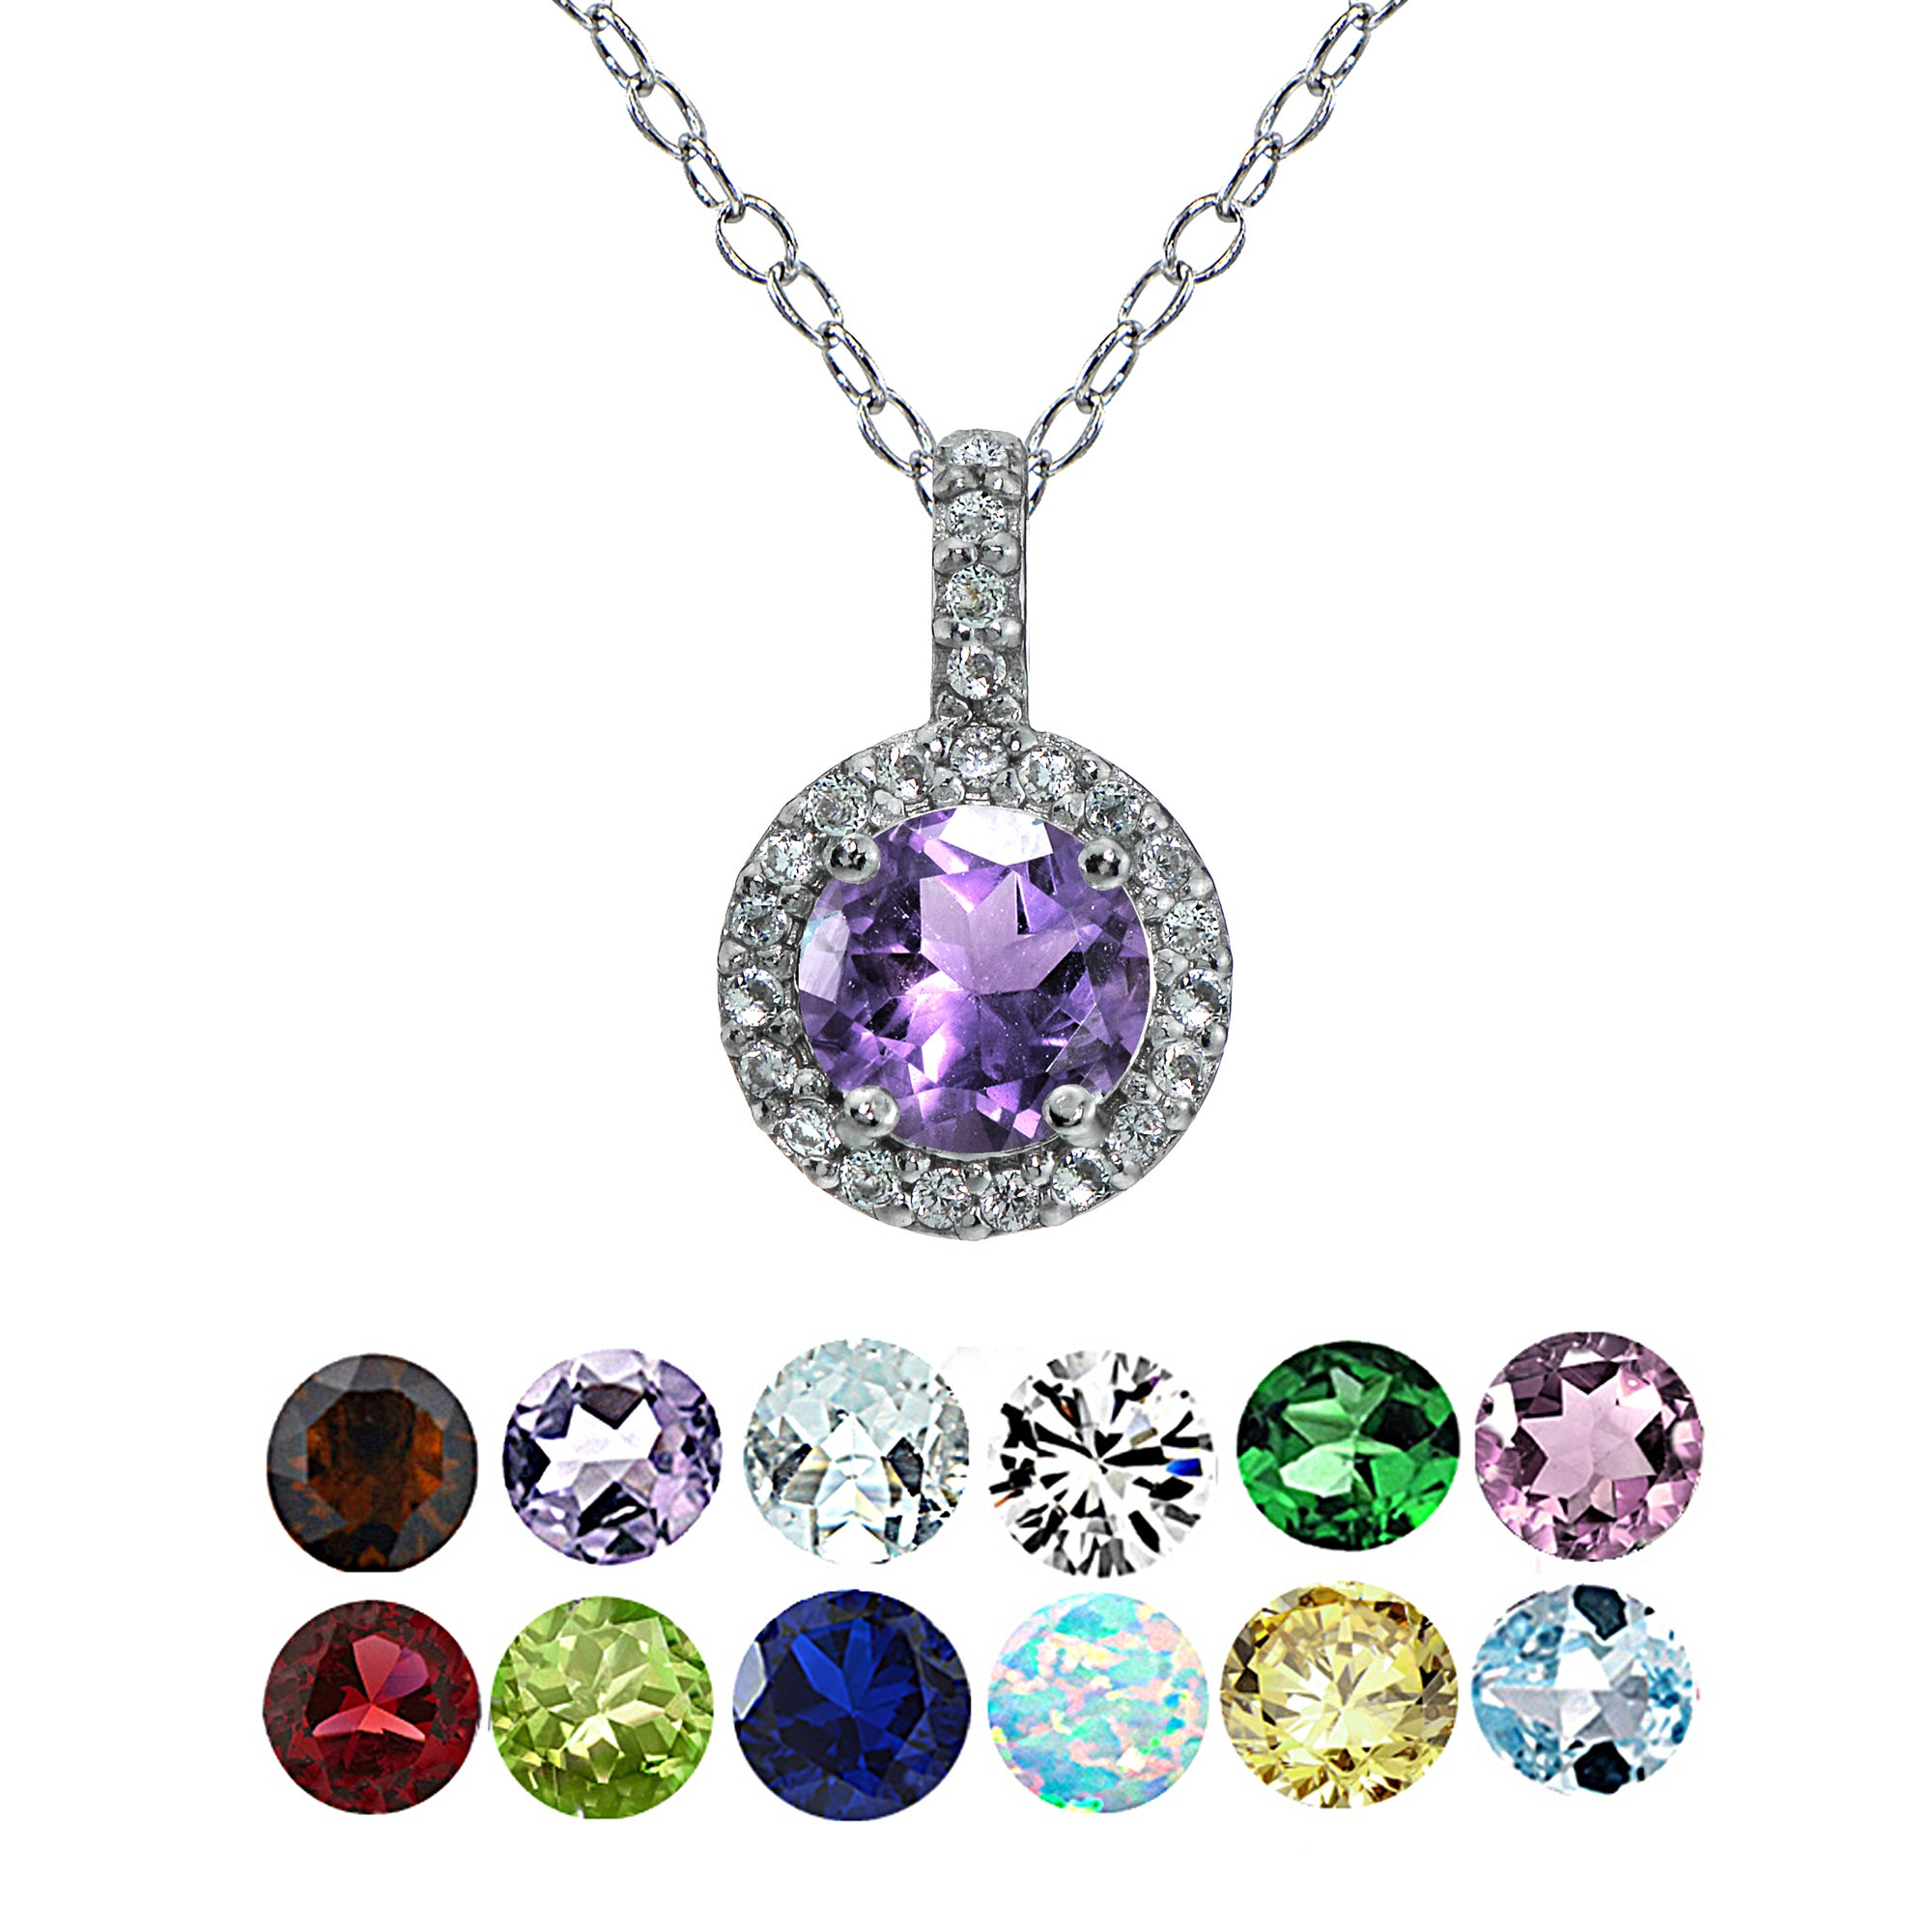 june ifctzl birthstone one earthy very natural alexandrite more and than necklace pendant